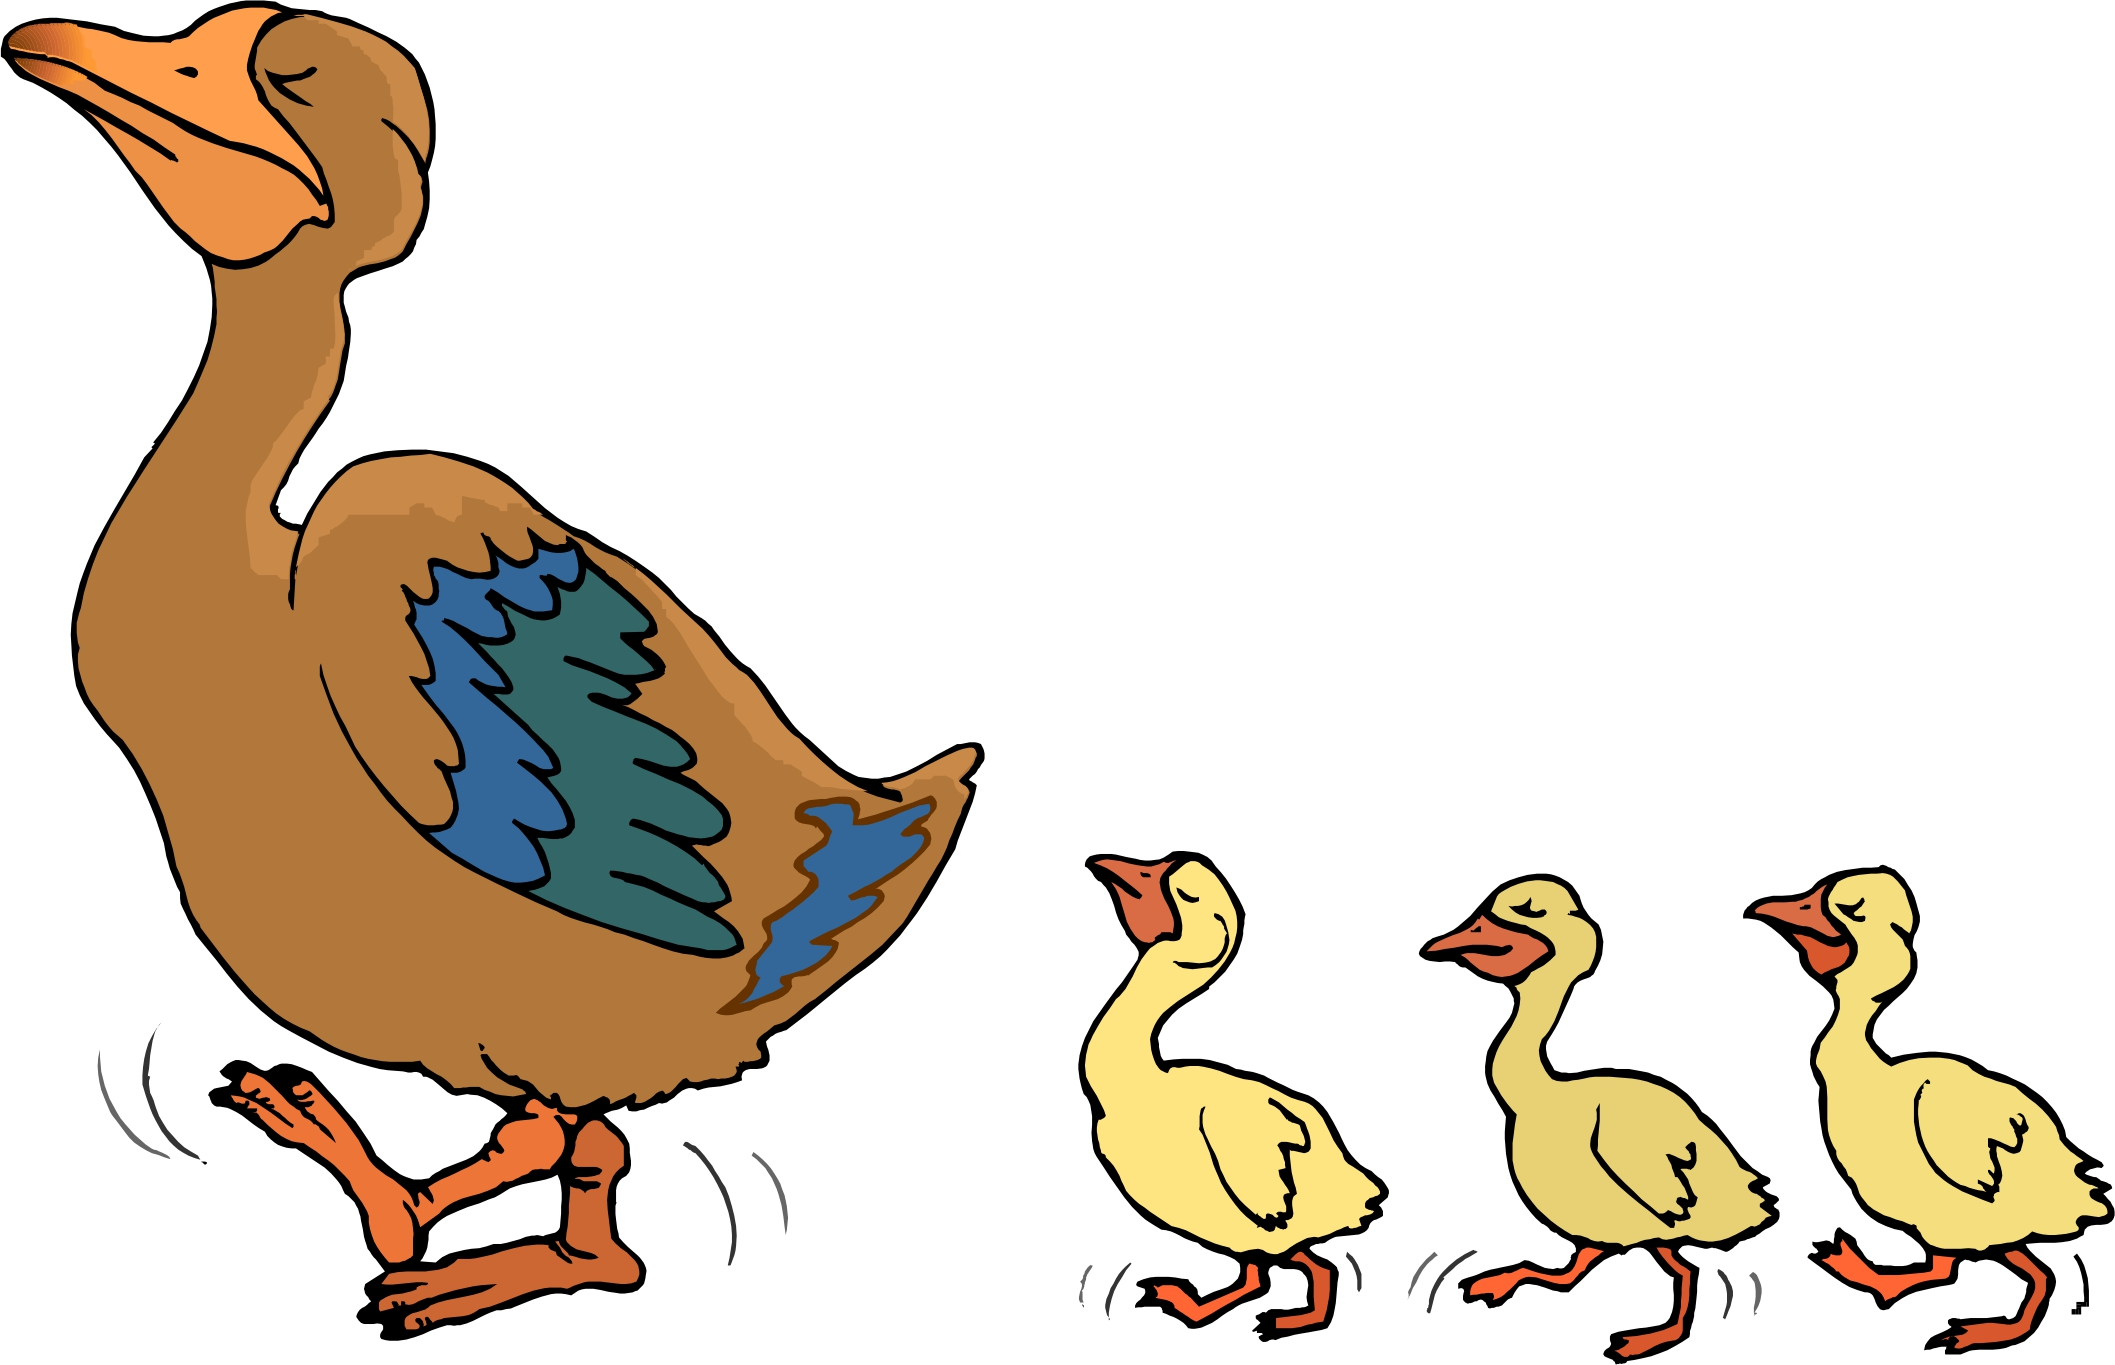 Duck Cartoon Images - Cliparts.co